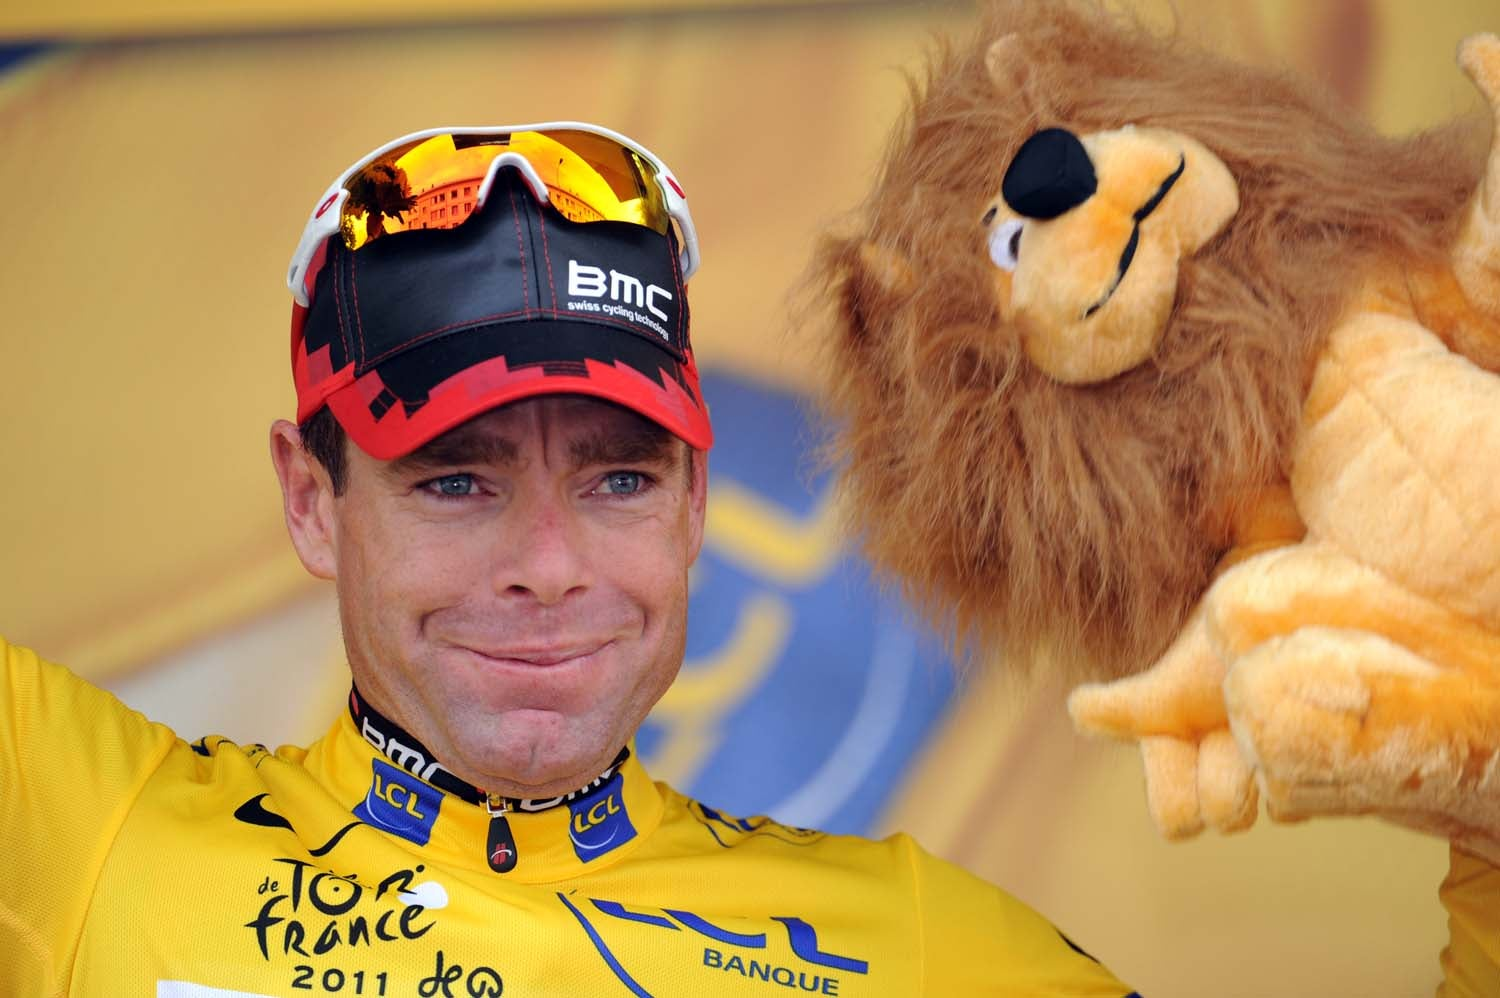 2011 Tour de France, stage 20, Cadel Evans in yellow